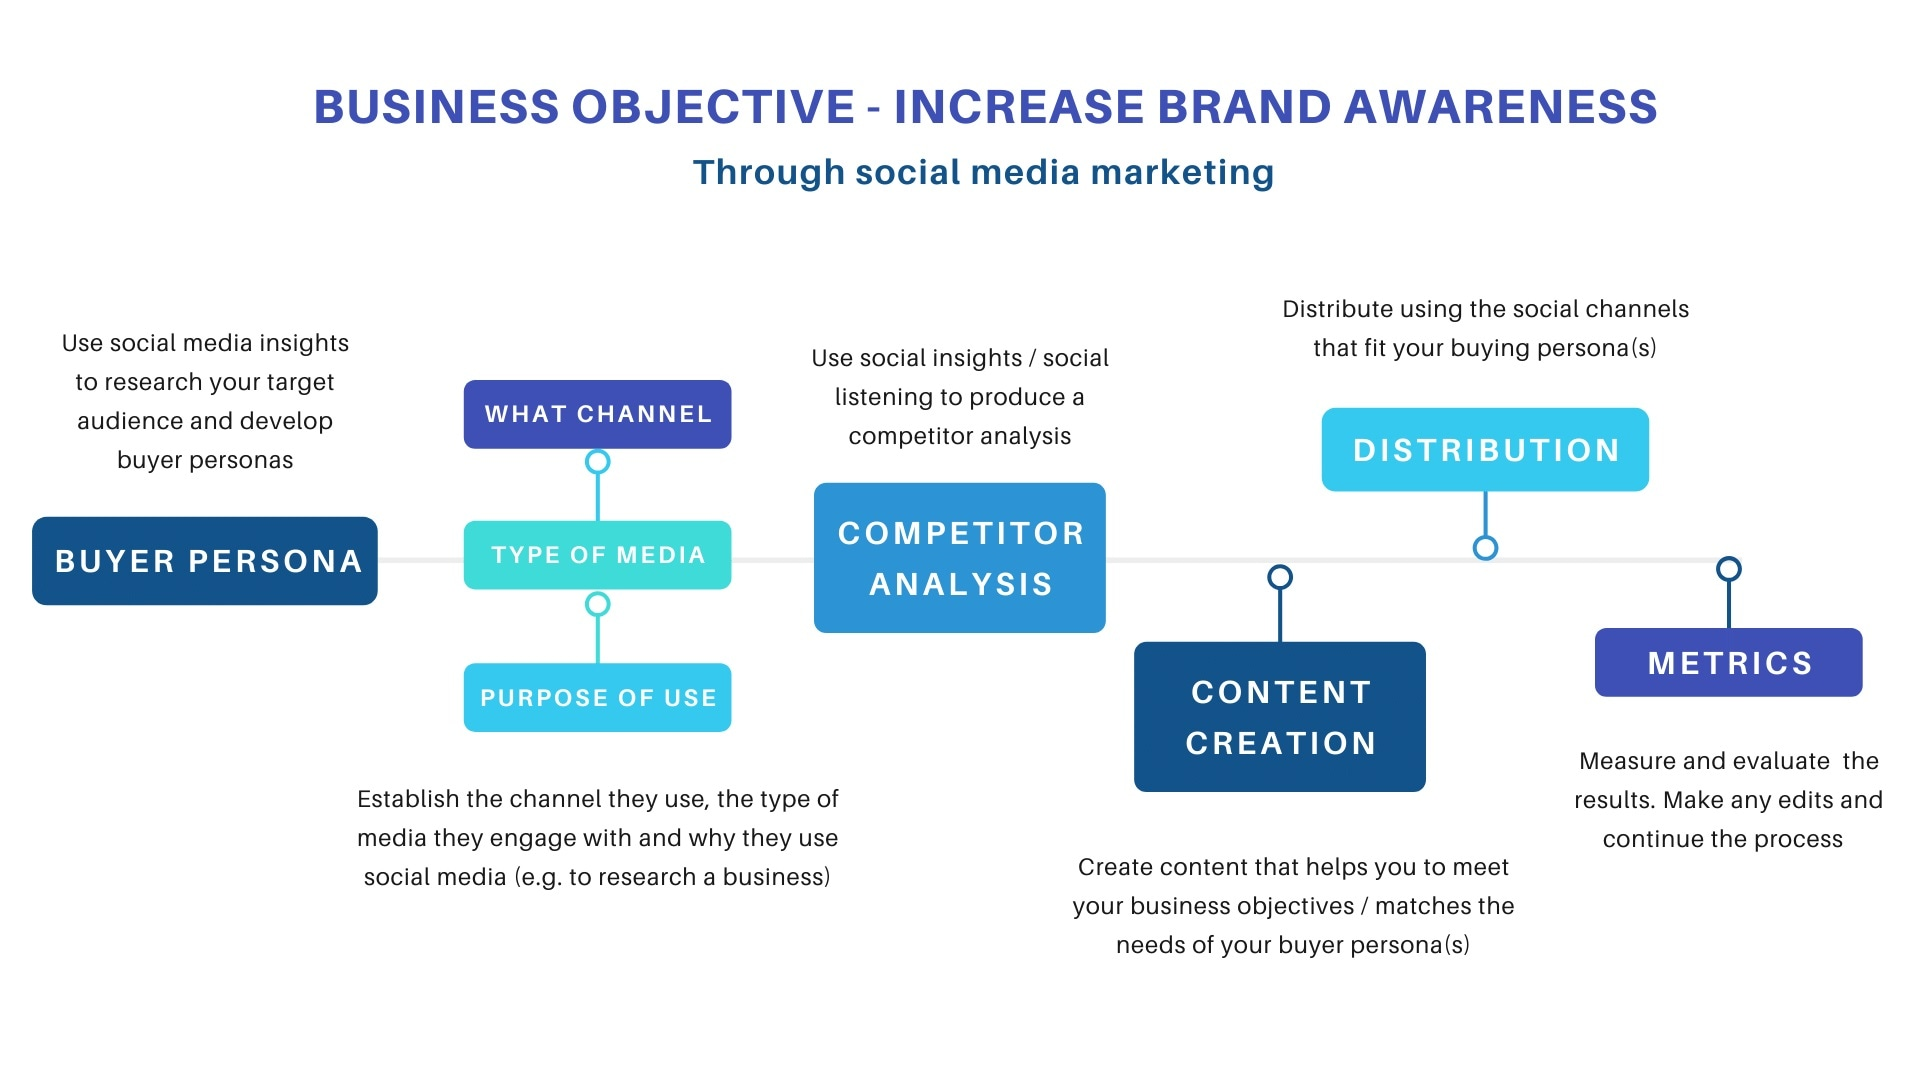 Business Objective - Increase brand awareness